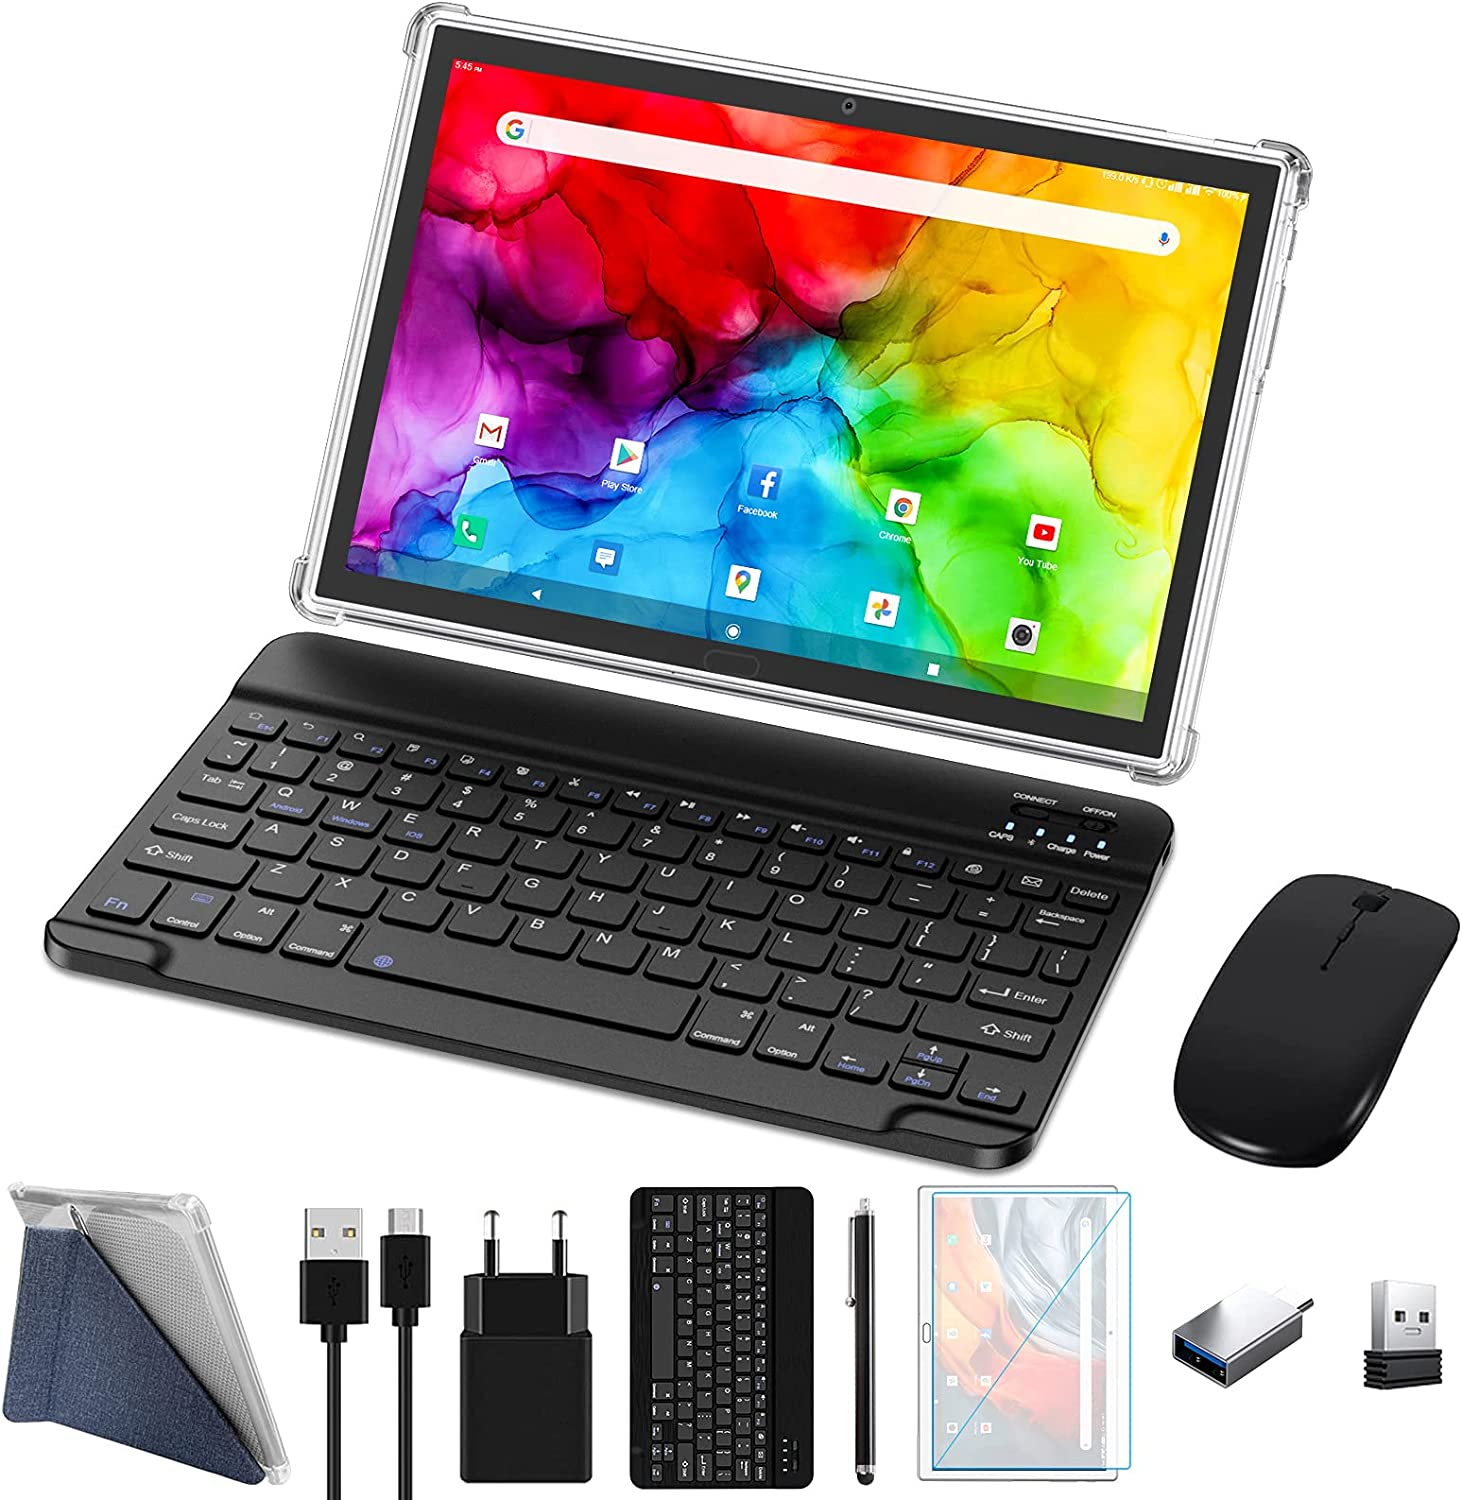 ZONKO Tablet 10 inch 4G Phone Tablet with Dual Sim Card Slot Android 10 Tablet PC, 4GB+64GB Storage Octa-Core Processor,13MP Dual Camera, WiFi Tablet with Keyboard, Wireless Mouse, Stylus(Grey)